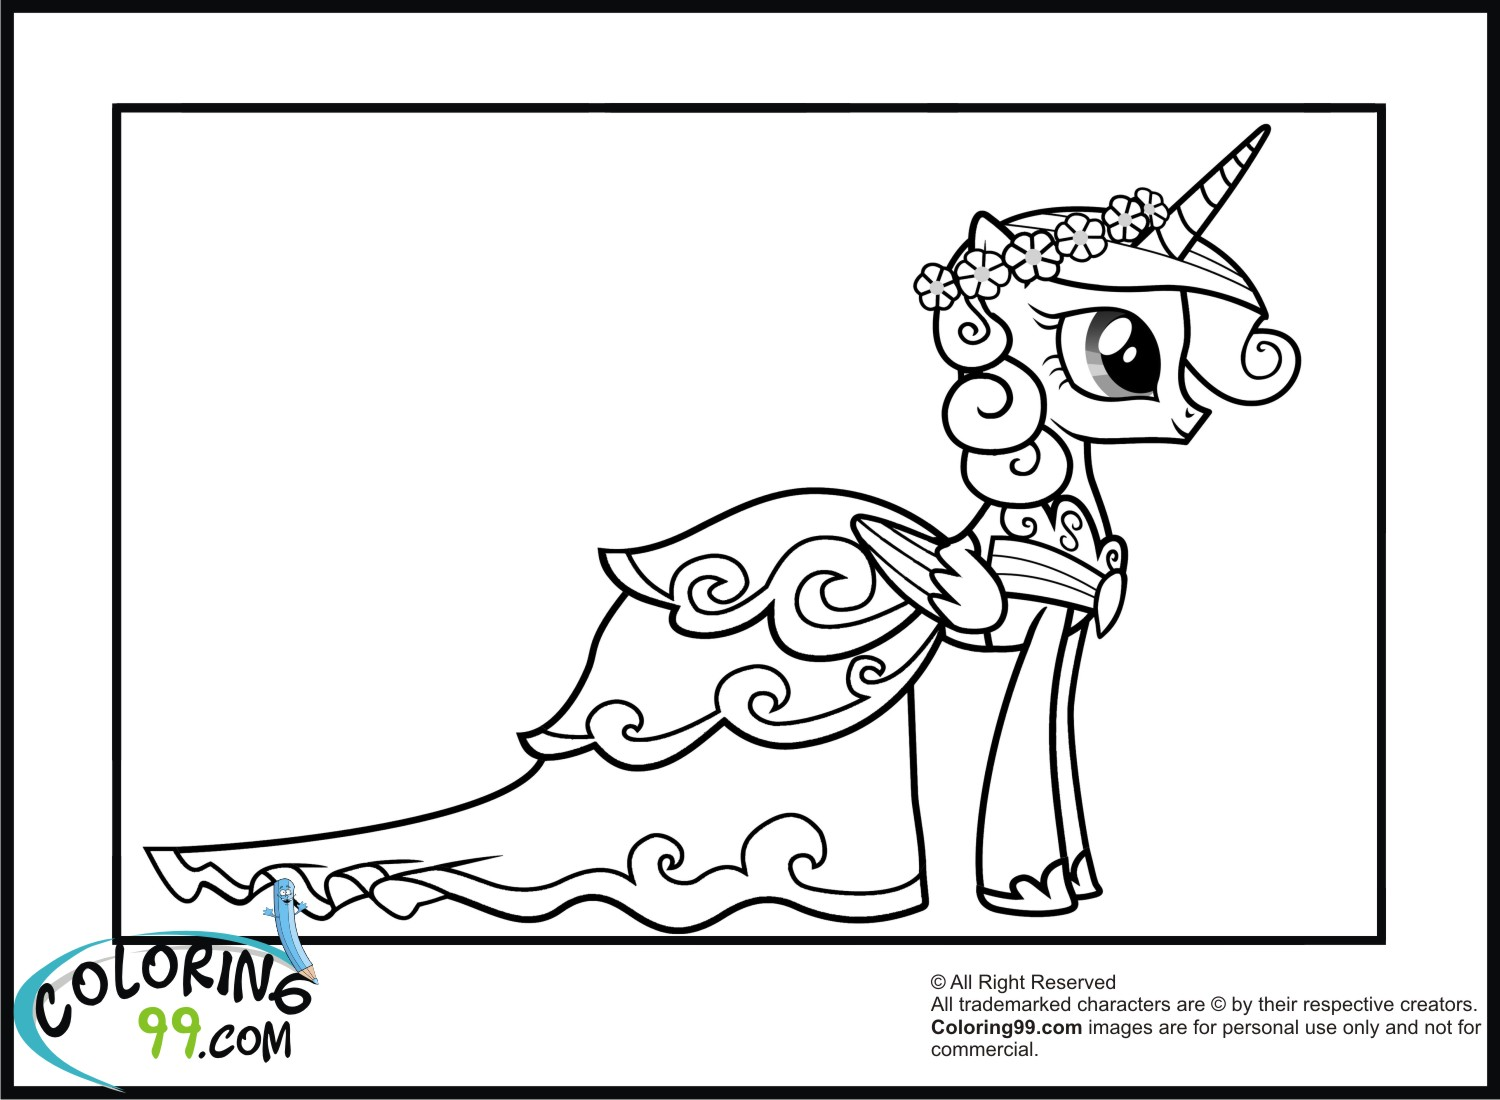 Princess Cadence Coloring Pages | Minister Coloring